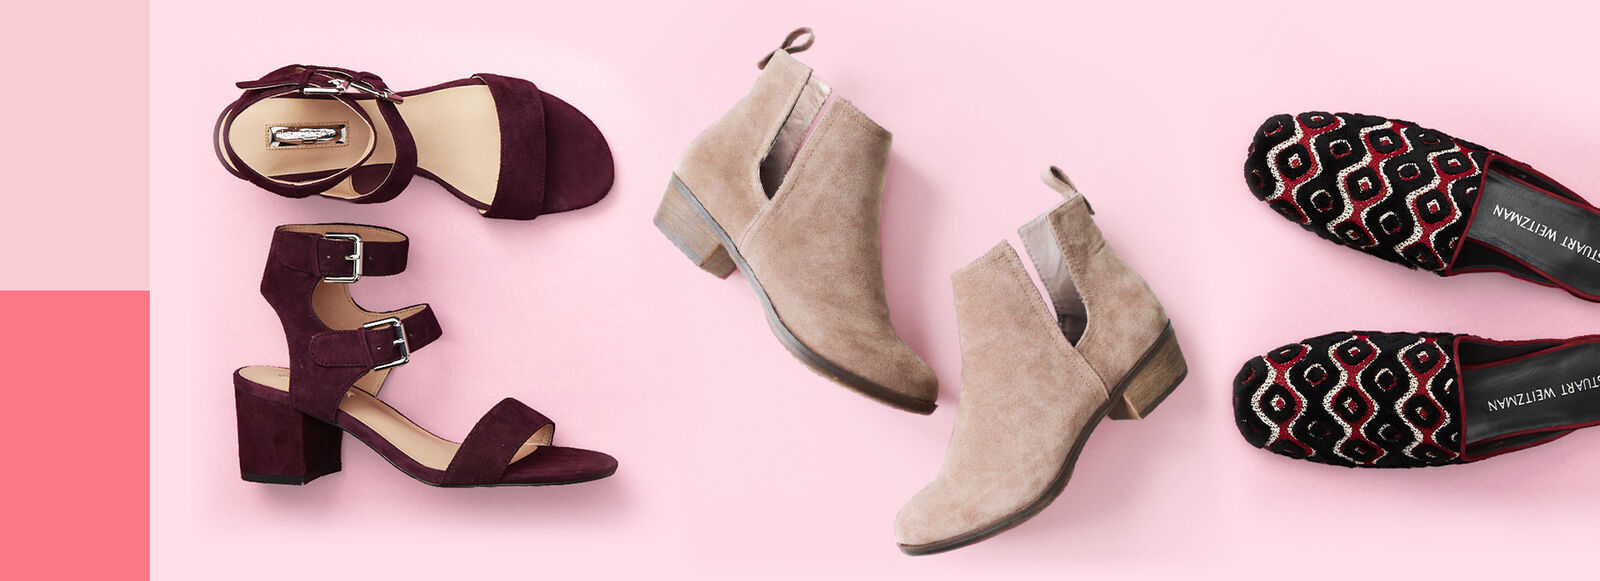 Summer-to-fall booties, mules, and more from $29.99.